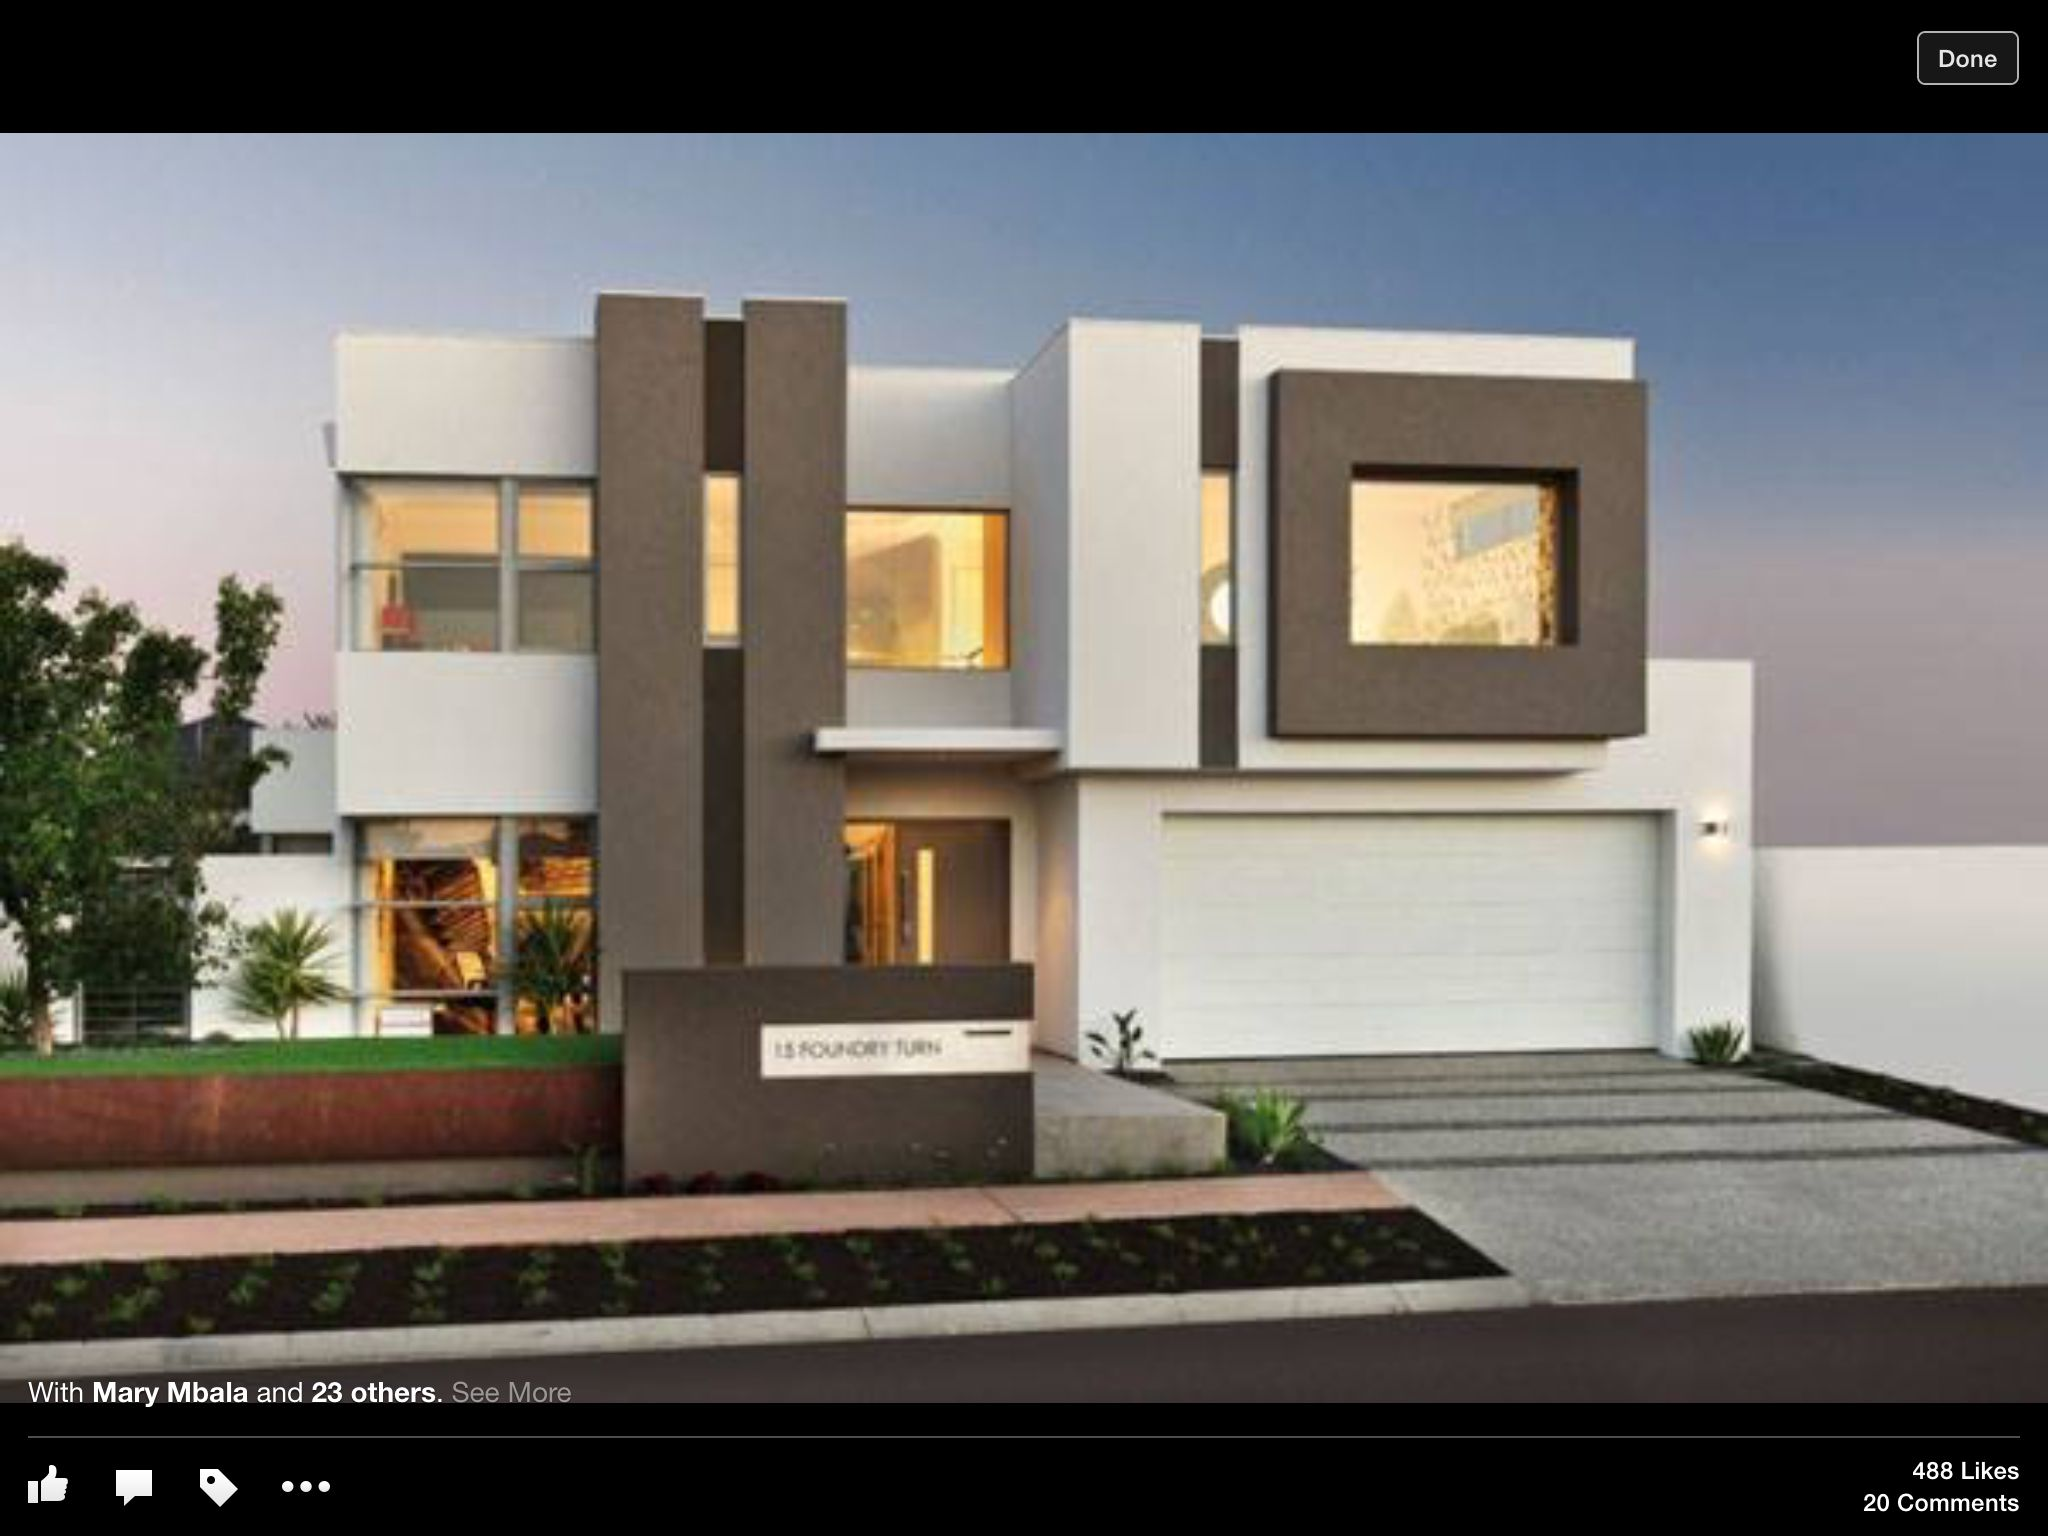 Pakistan modern home designs modern desert homes - Rendered White And Brown 2 Storey House Contemporary